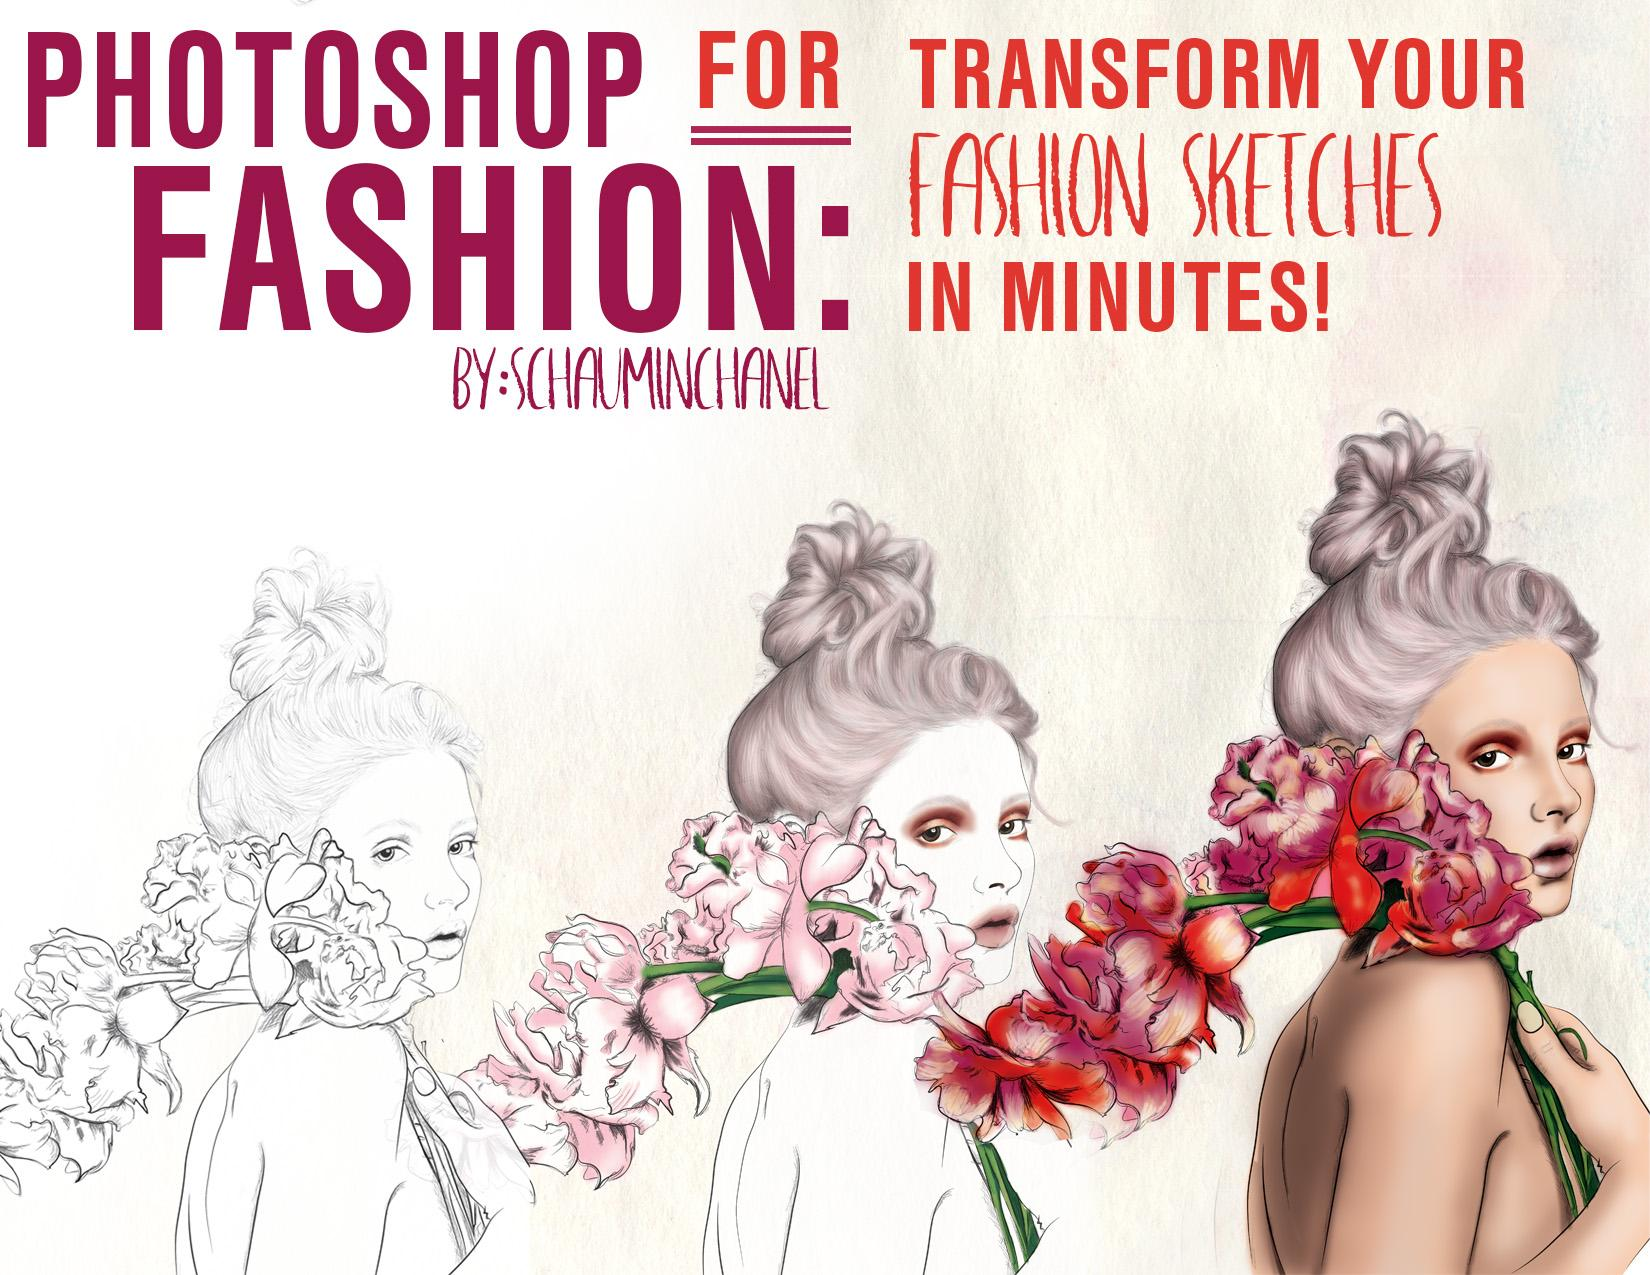 Photoshop for fashion transform your hand drawn fashion sketch in join schauminchanel fashion illustrator designer and author of the book the fashion designers ultimate quick step guide to photoshop digital izmirmasajfo